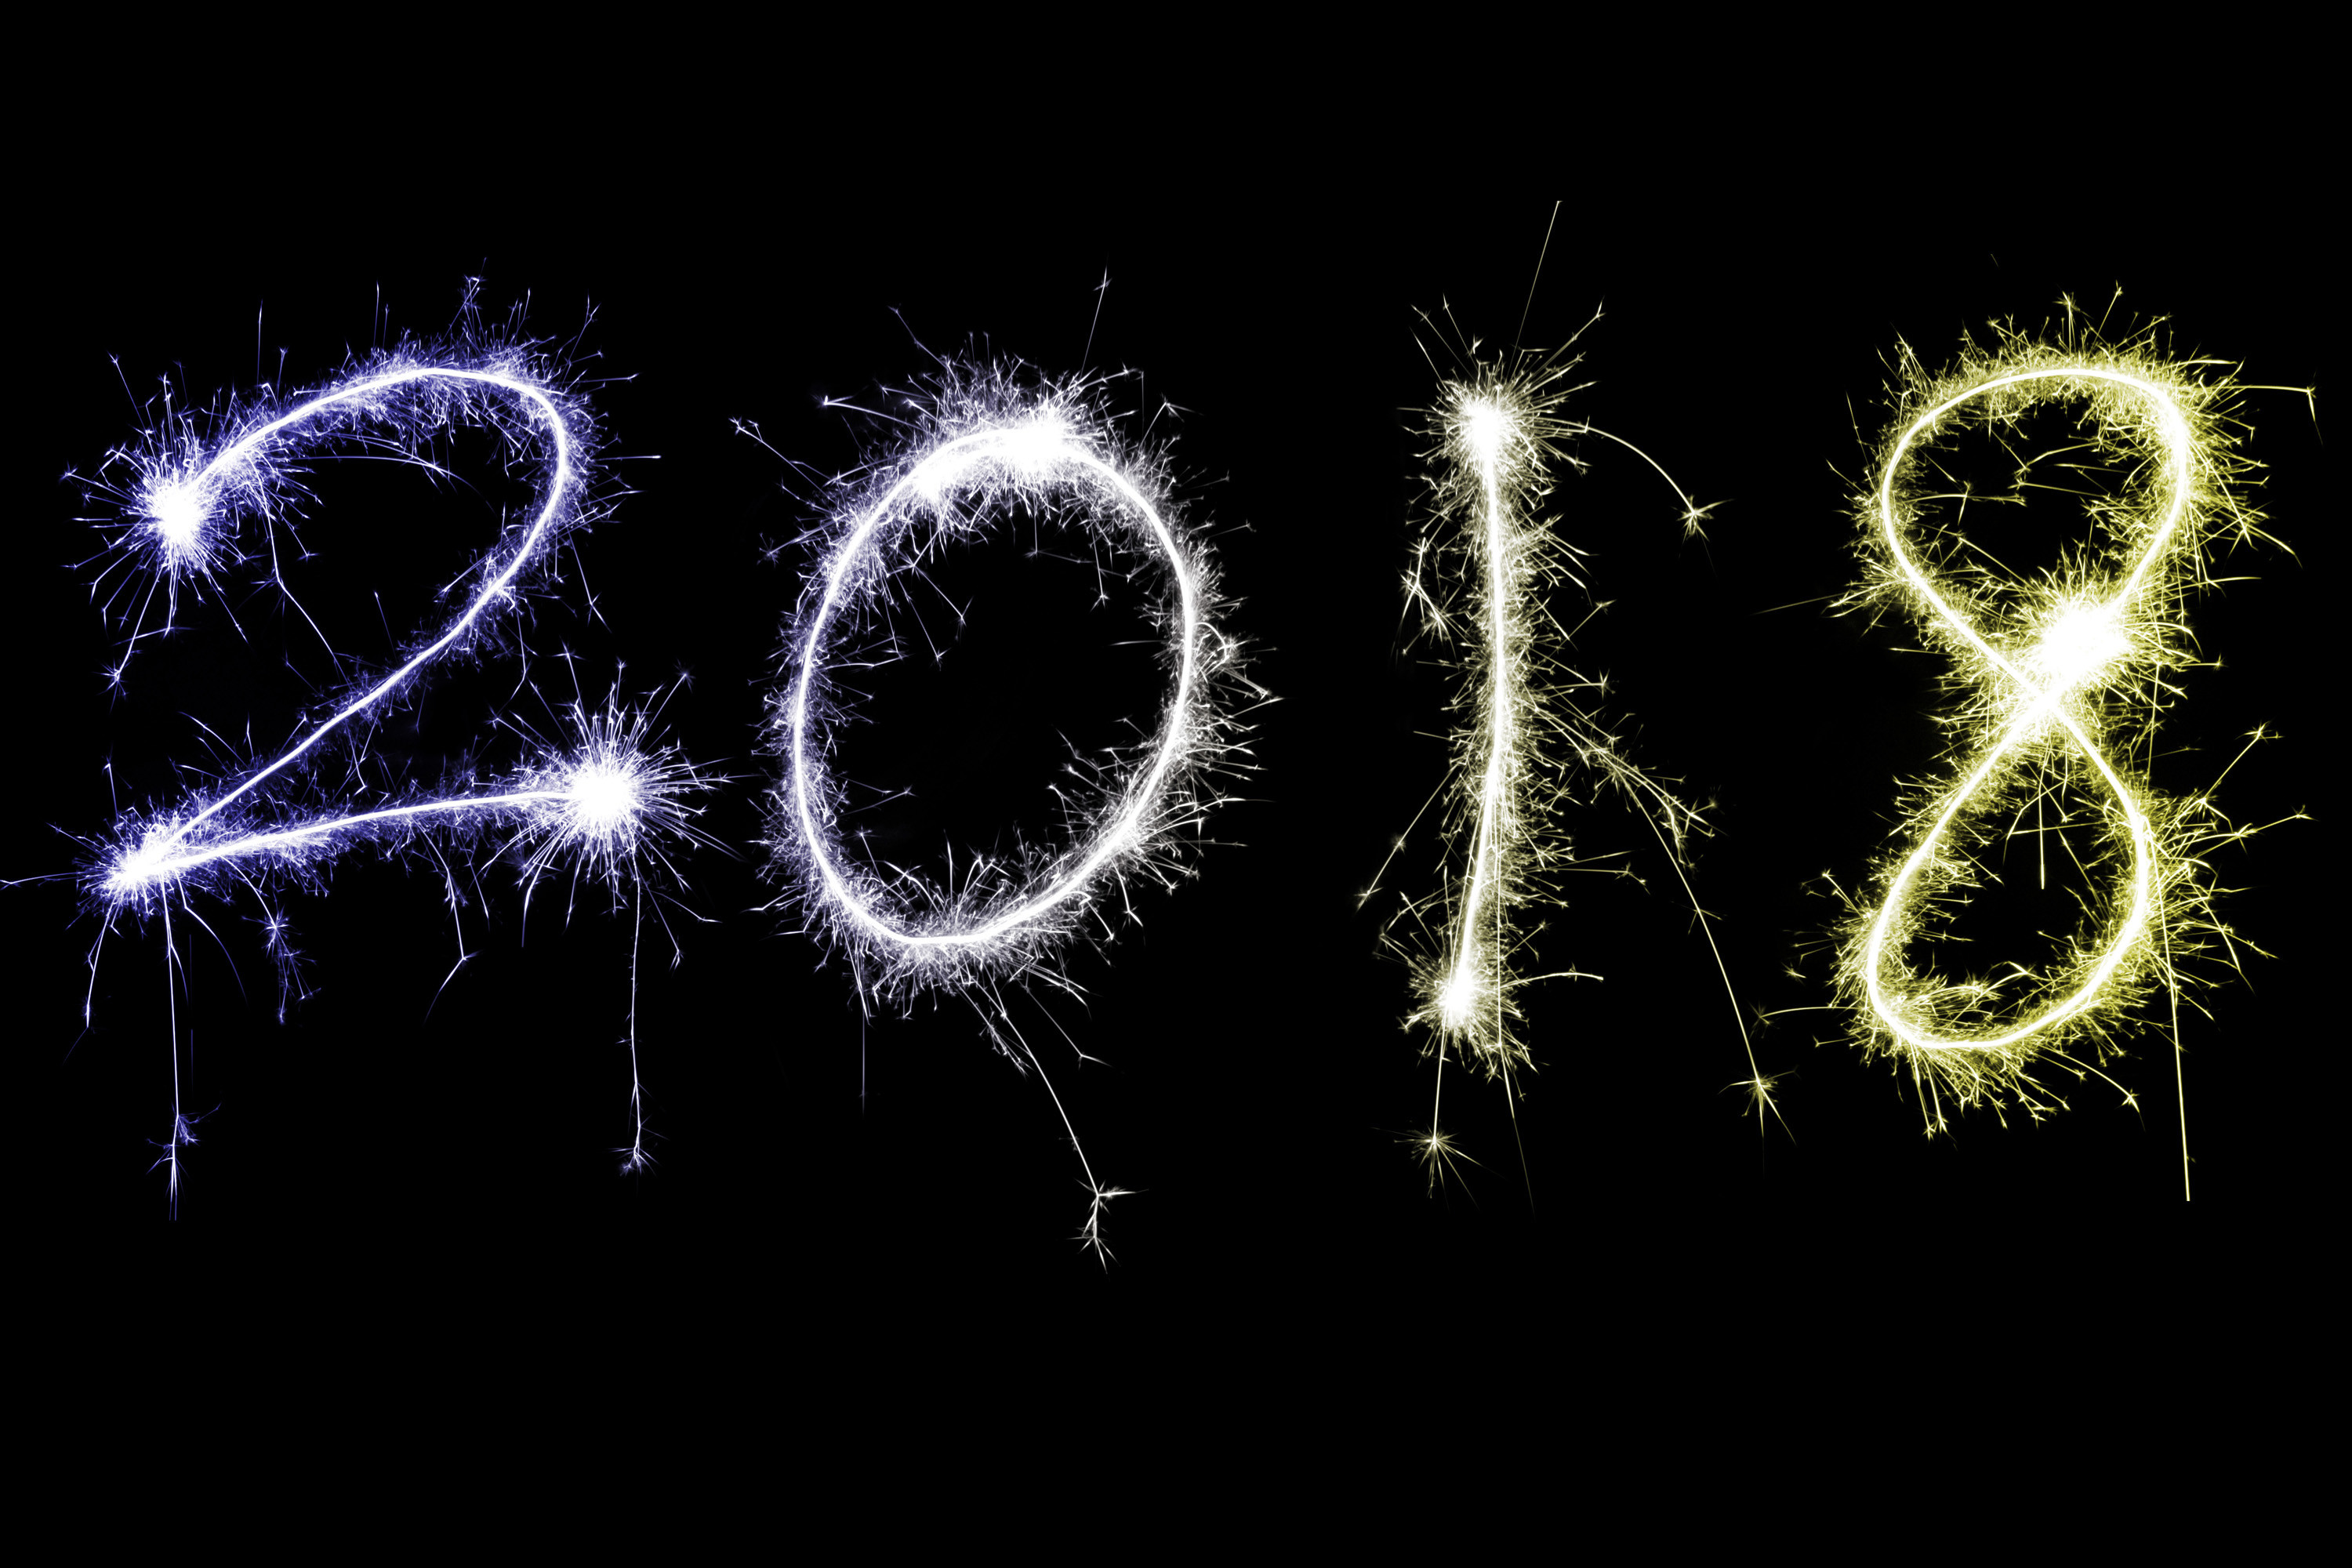 New Years Eve Wallpapers 2018 60 images 3000x2000